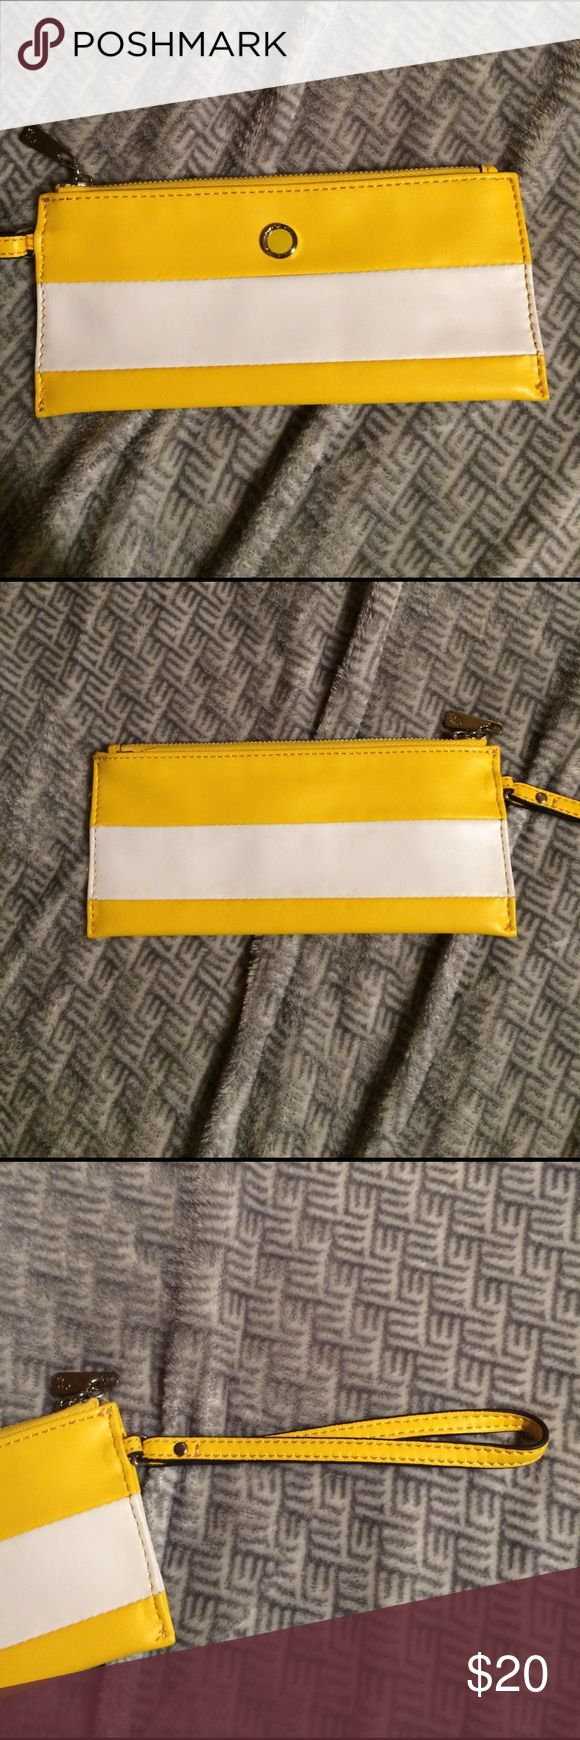 Grace Adele wristlet NWOT Yellow and white Grace Adele wristlet. Never used and have been kept in the dust bag it came in. Super cute just not my style. Grace Adele Bags Clutches & Wristlets